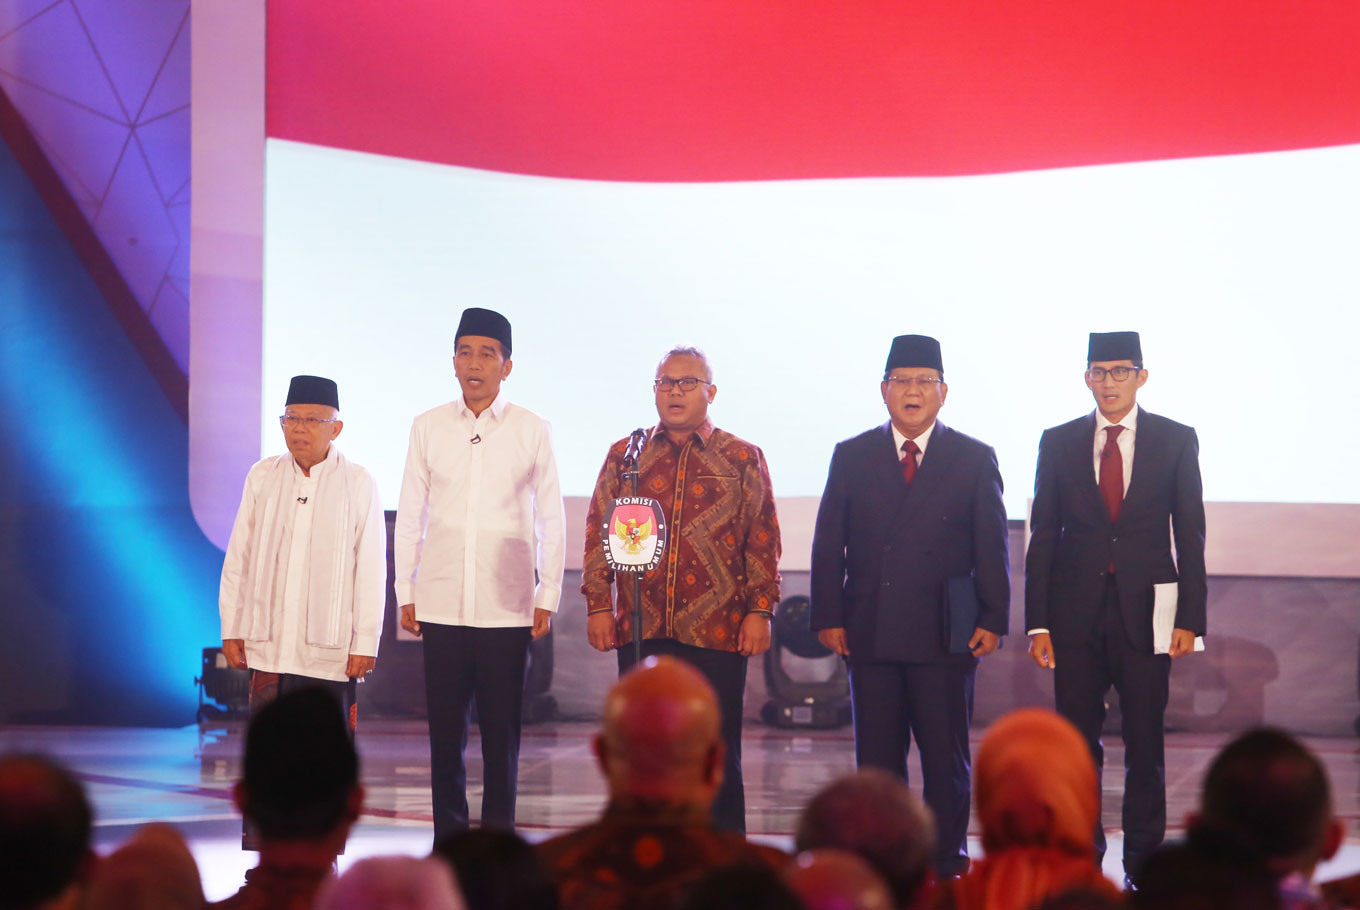 Irwandi's Nanggroe Aceh Party declares support for Jokowi in 2019 race